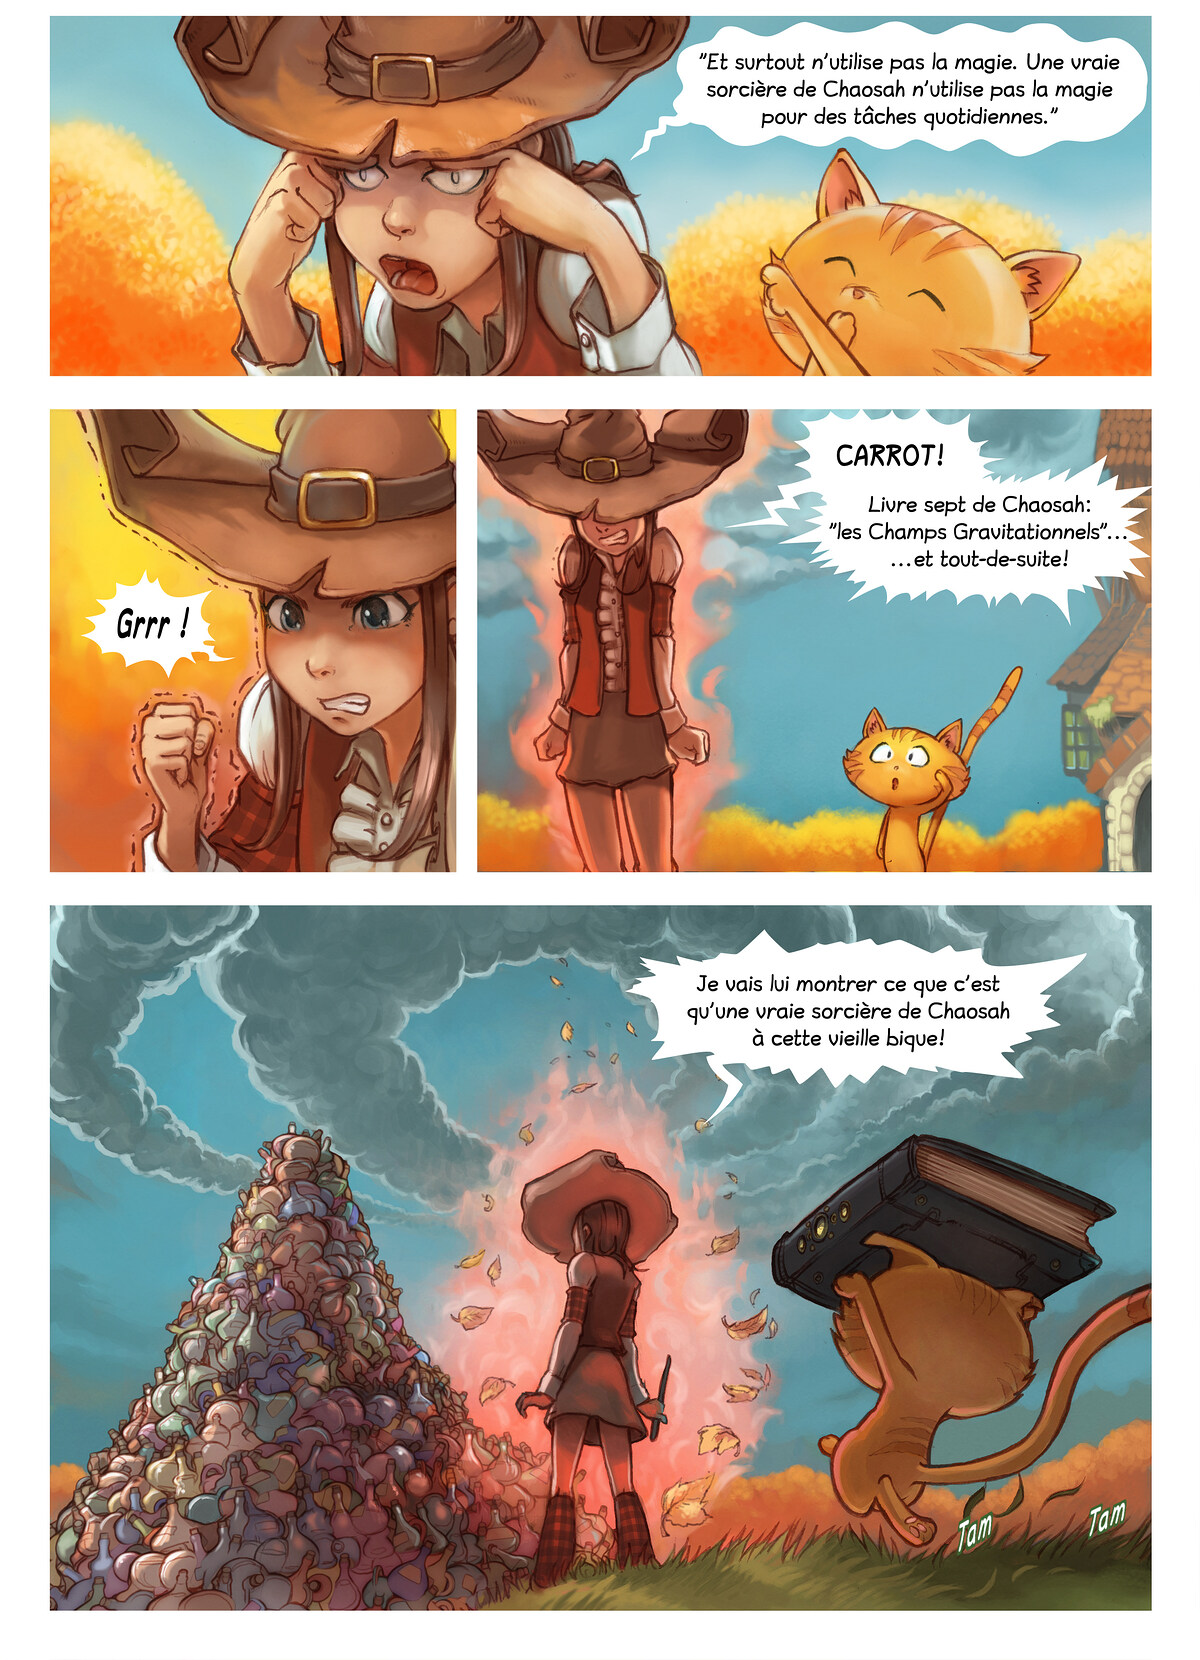 A webcomic page of Pepper&Carrot, épisode 12 [fr], page 3